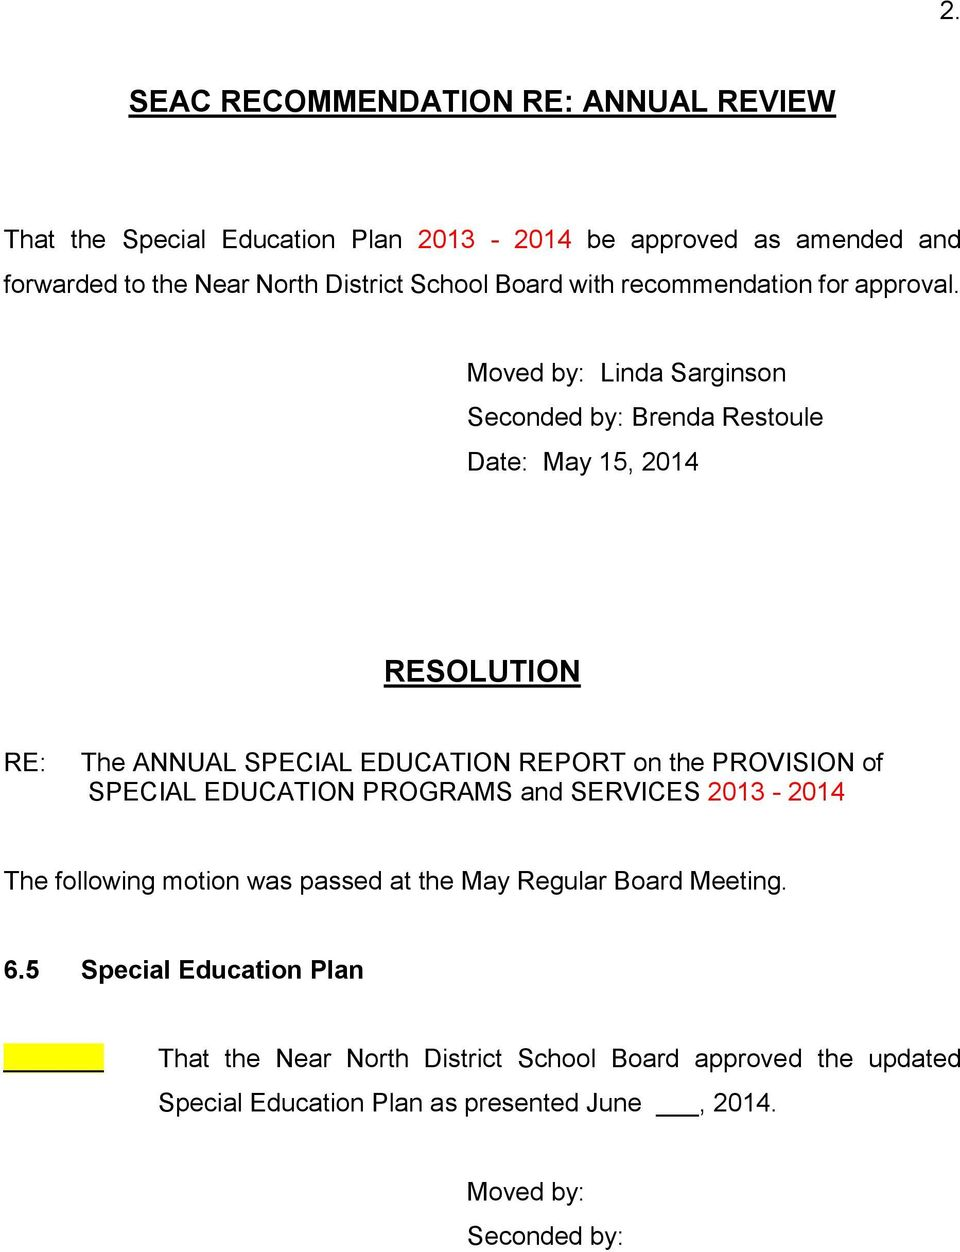 Moved by: Linda Sarginson Seconded by: Brenda Restoule Date: May 15, 2014 RESOLUTION RE: The ANNUAL SPECIAL EDUCATION REPORT on the PROVISION of SPECIAL